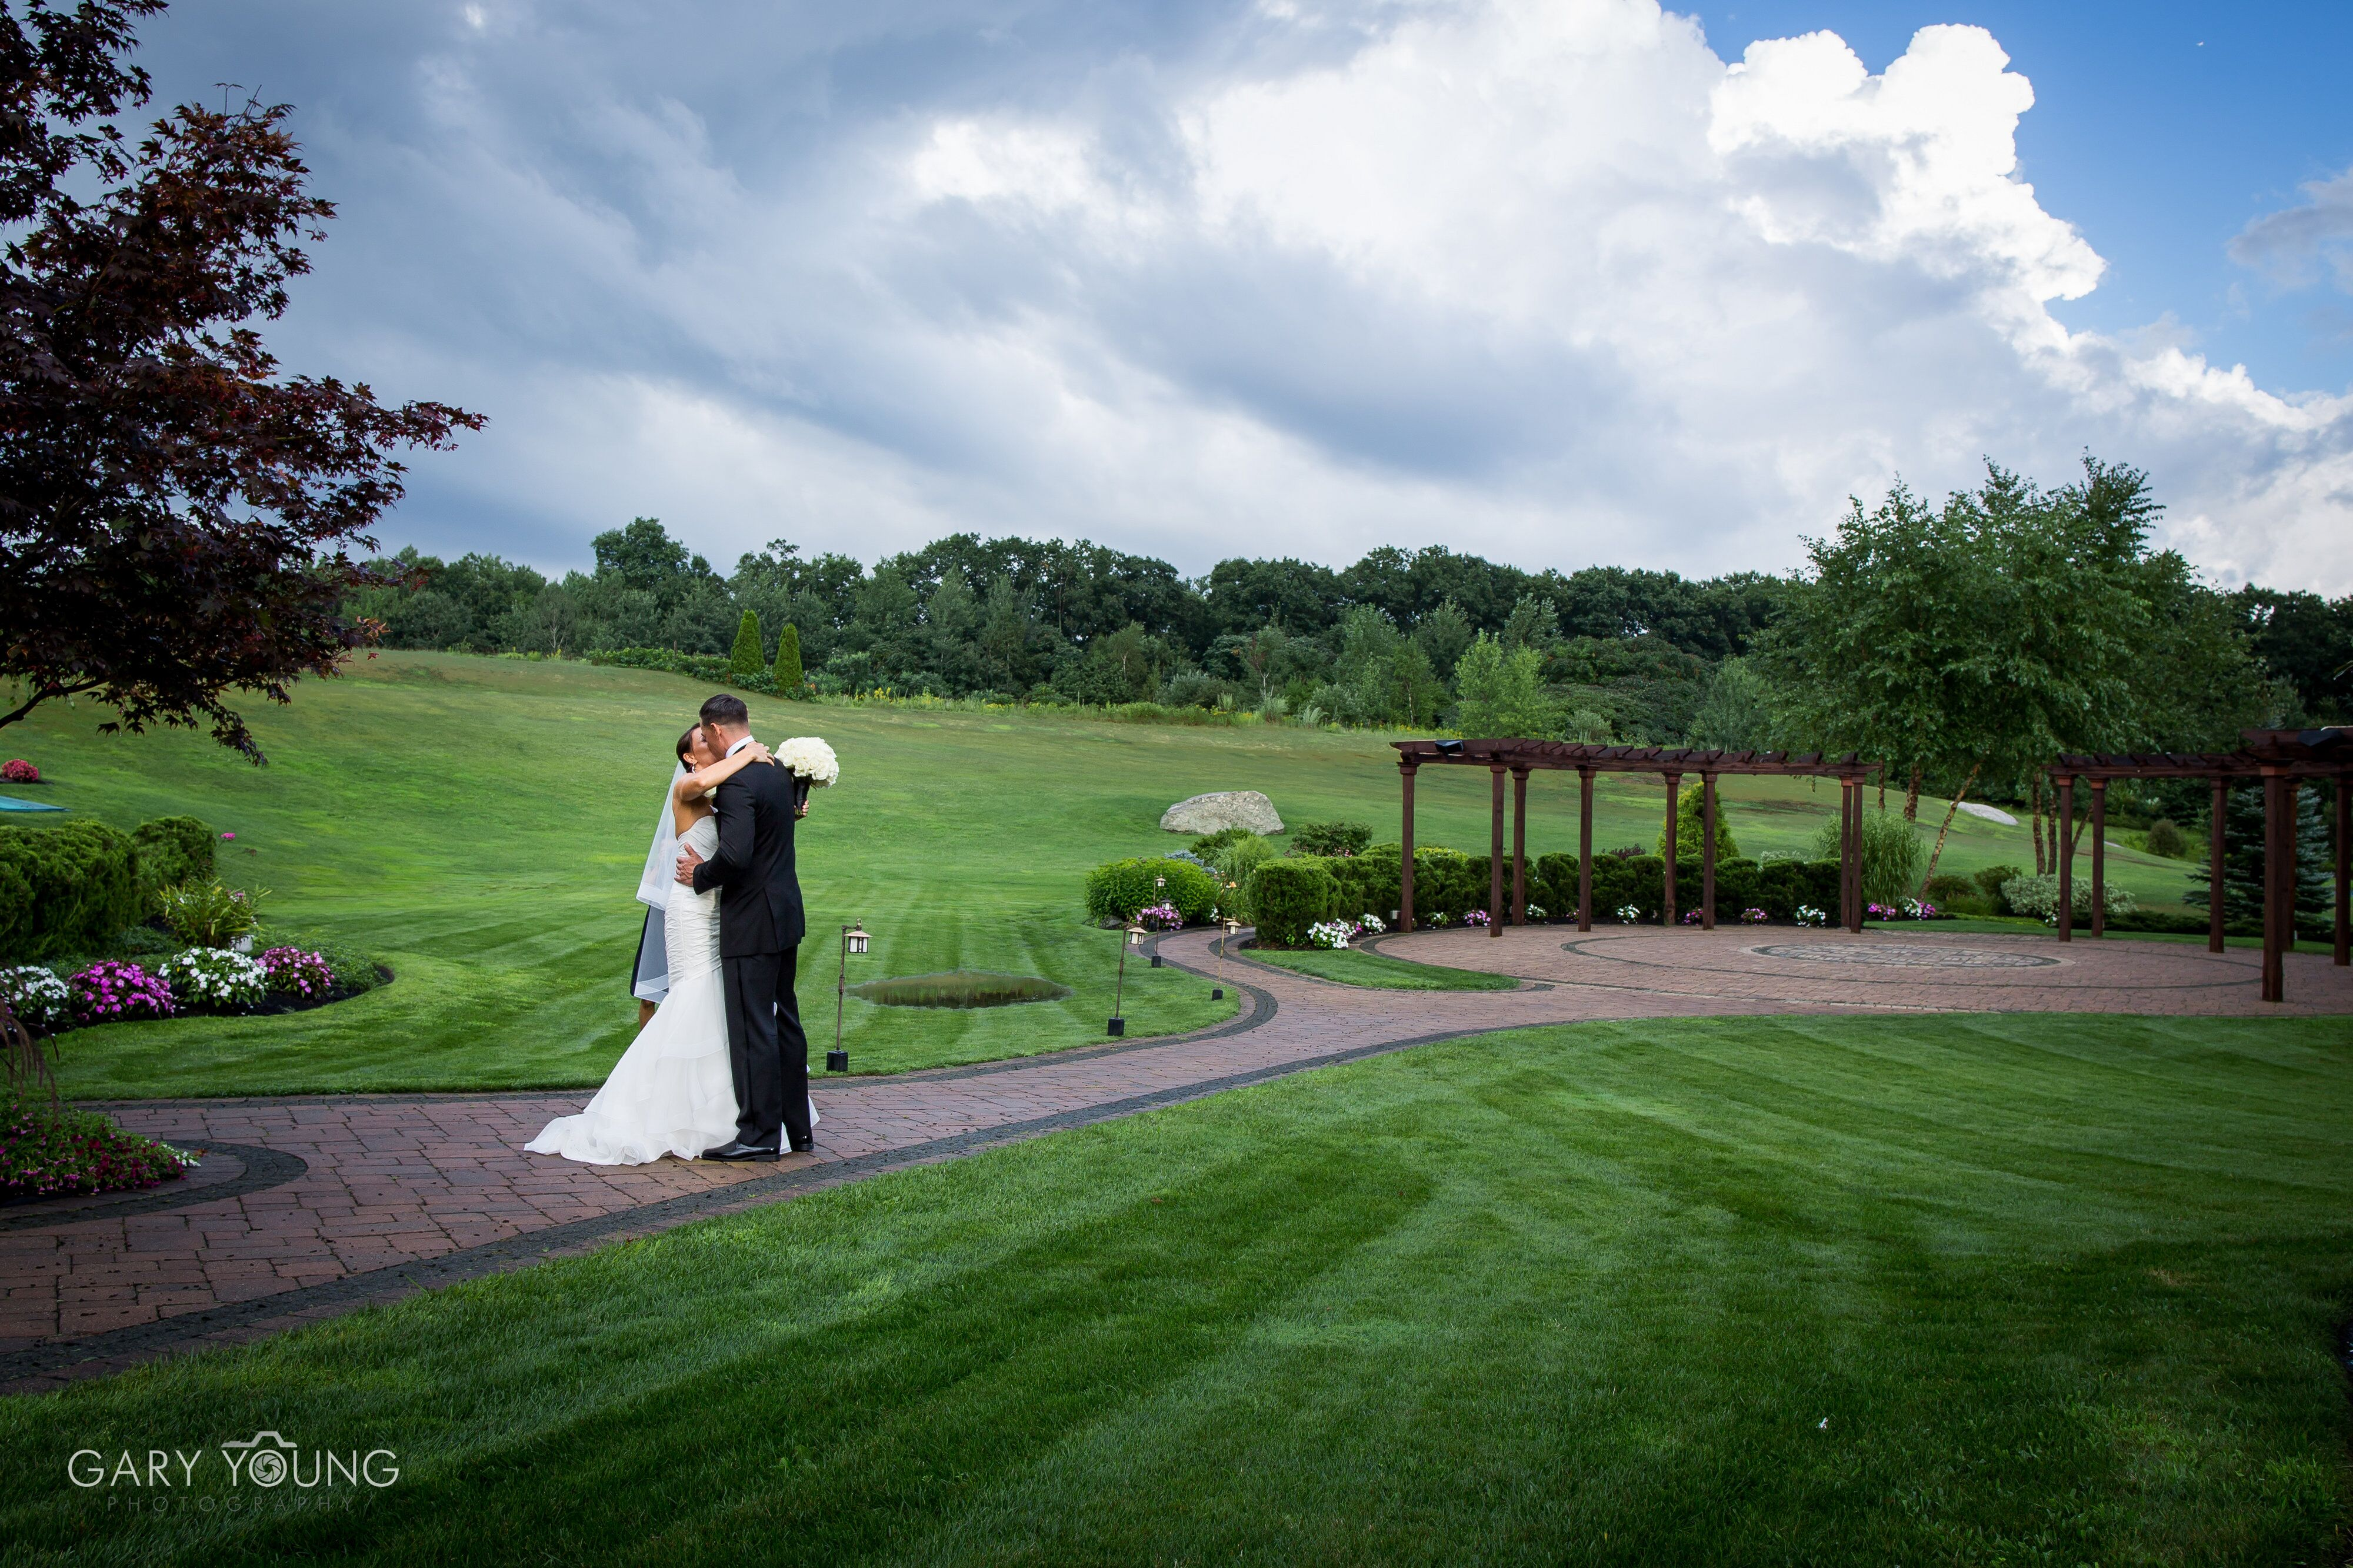 Wedding reception venues in manchester nh the knot atkinson resort country club junglespirit Choice Image